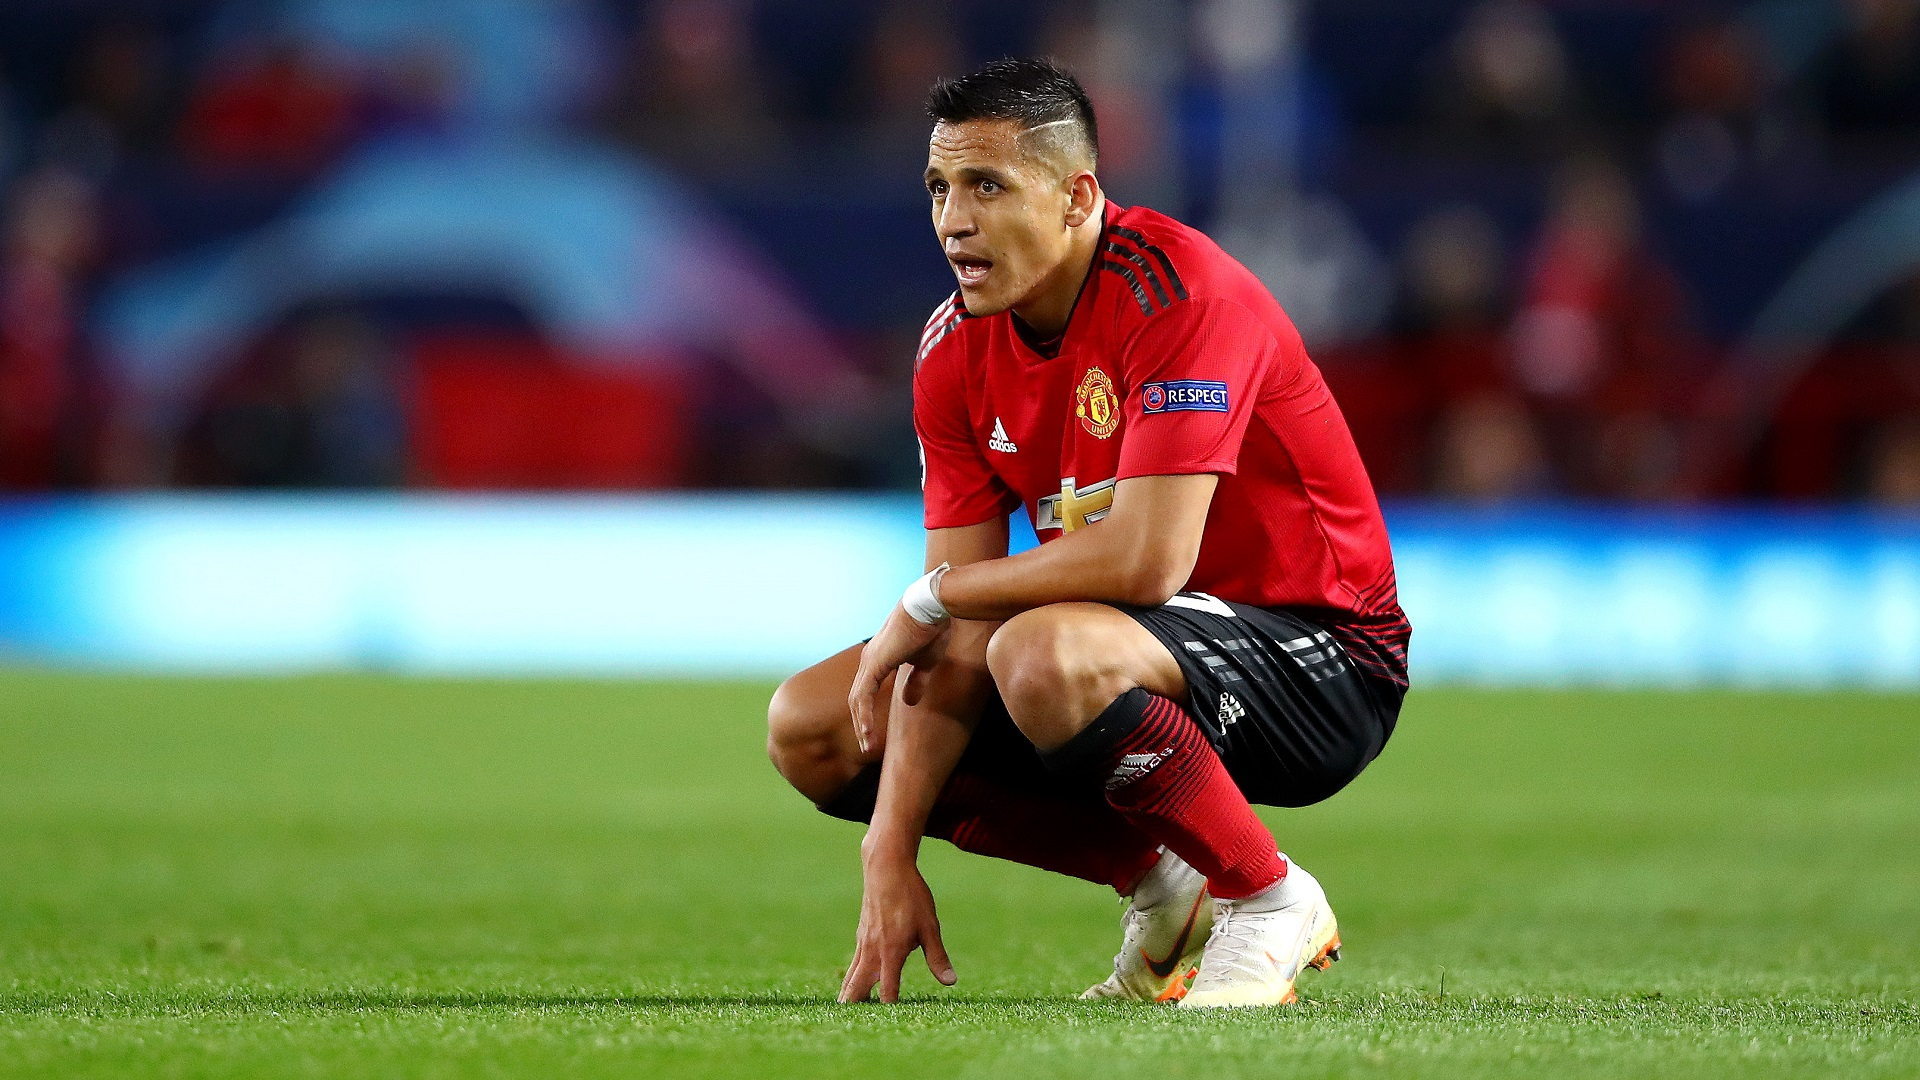 EPL: PSG give condition to sign Alexis Sanchez from Man United